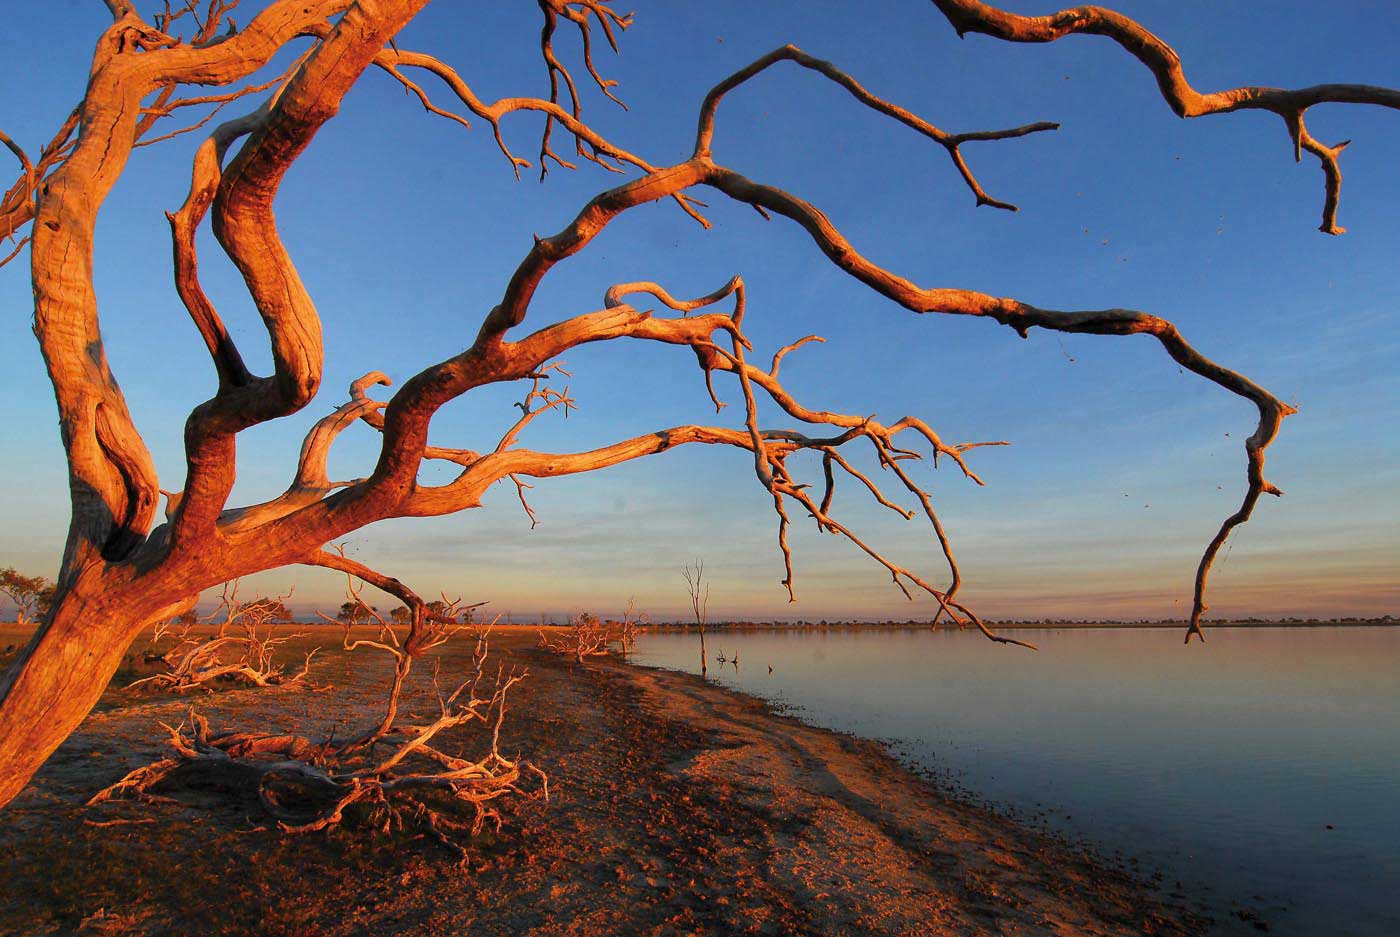 Colour photograph of a landscape featuring a dead tree overlooking a lake.